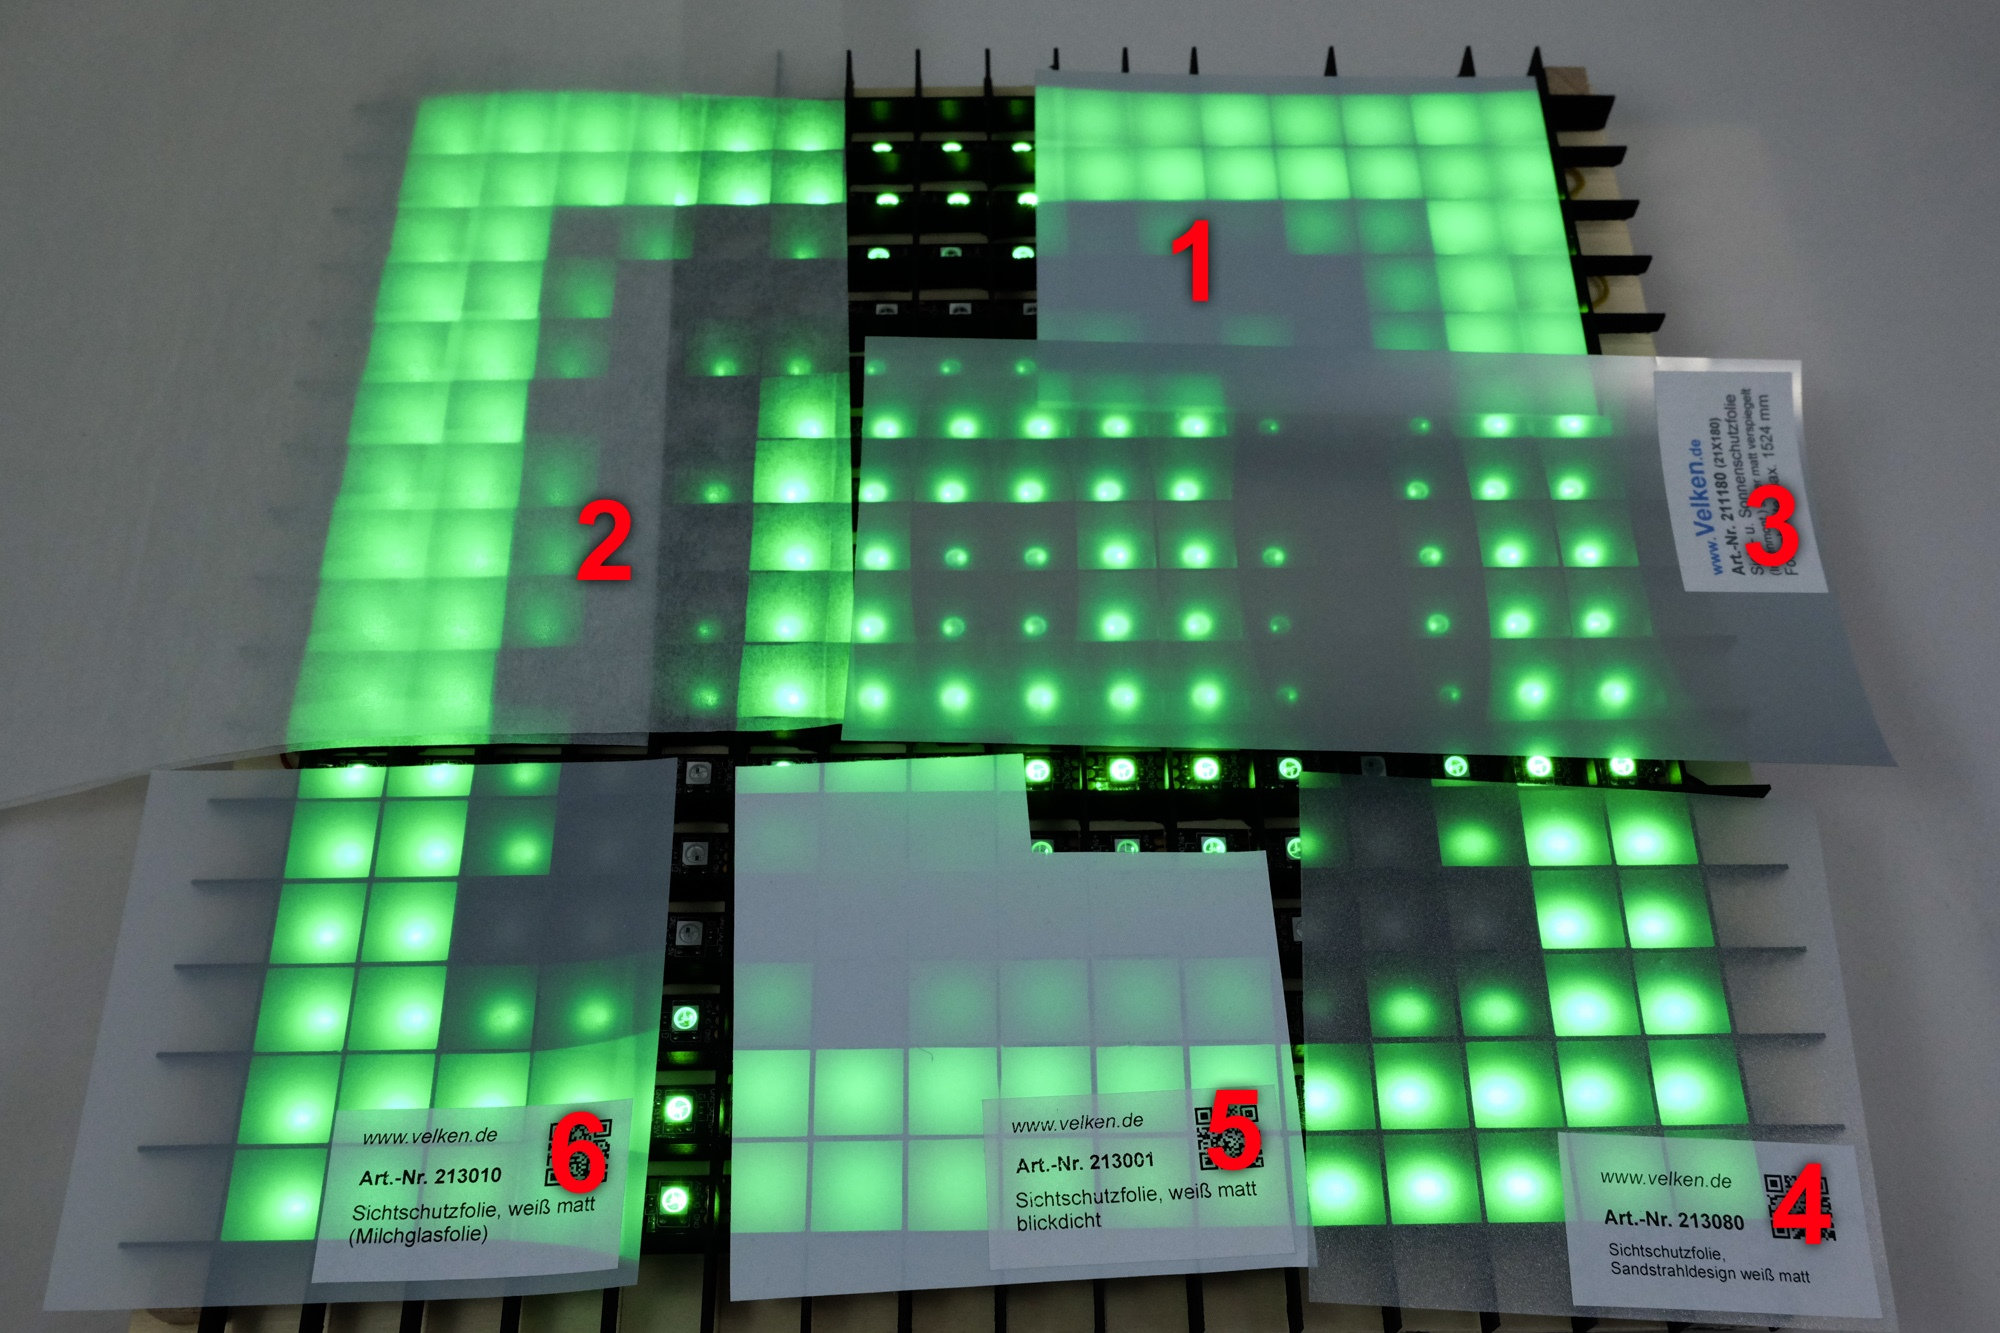 LED Matrix Materials Guide | Marian's Blog